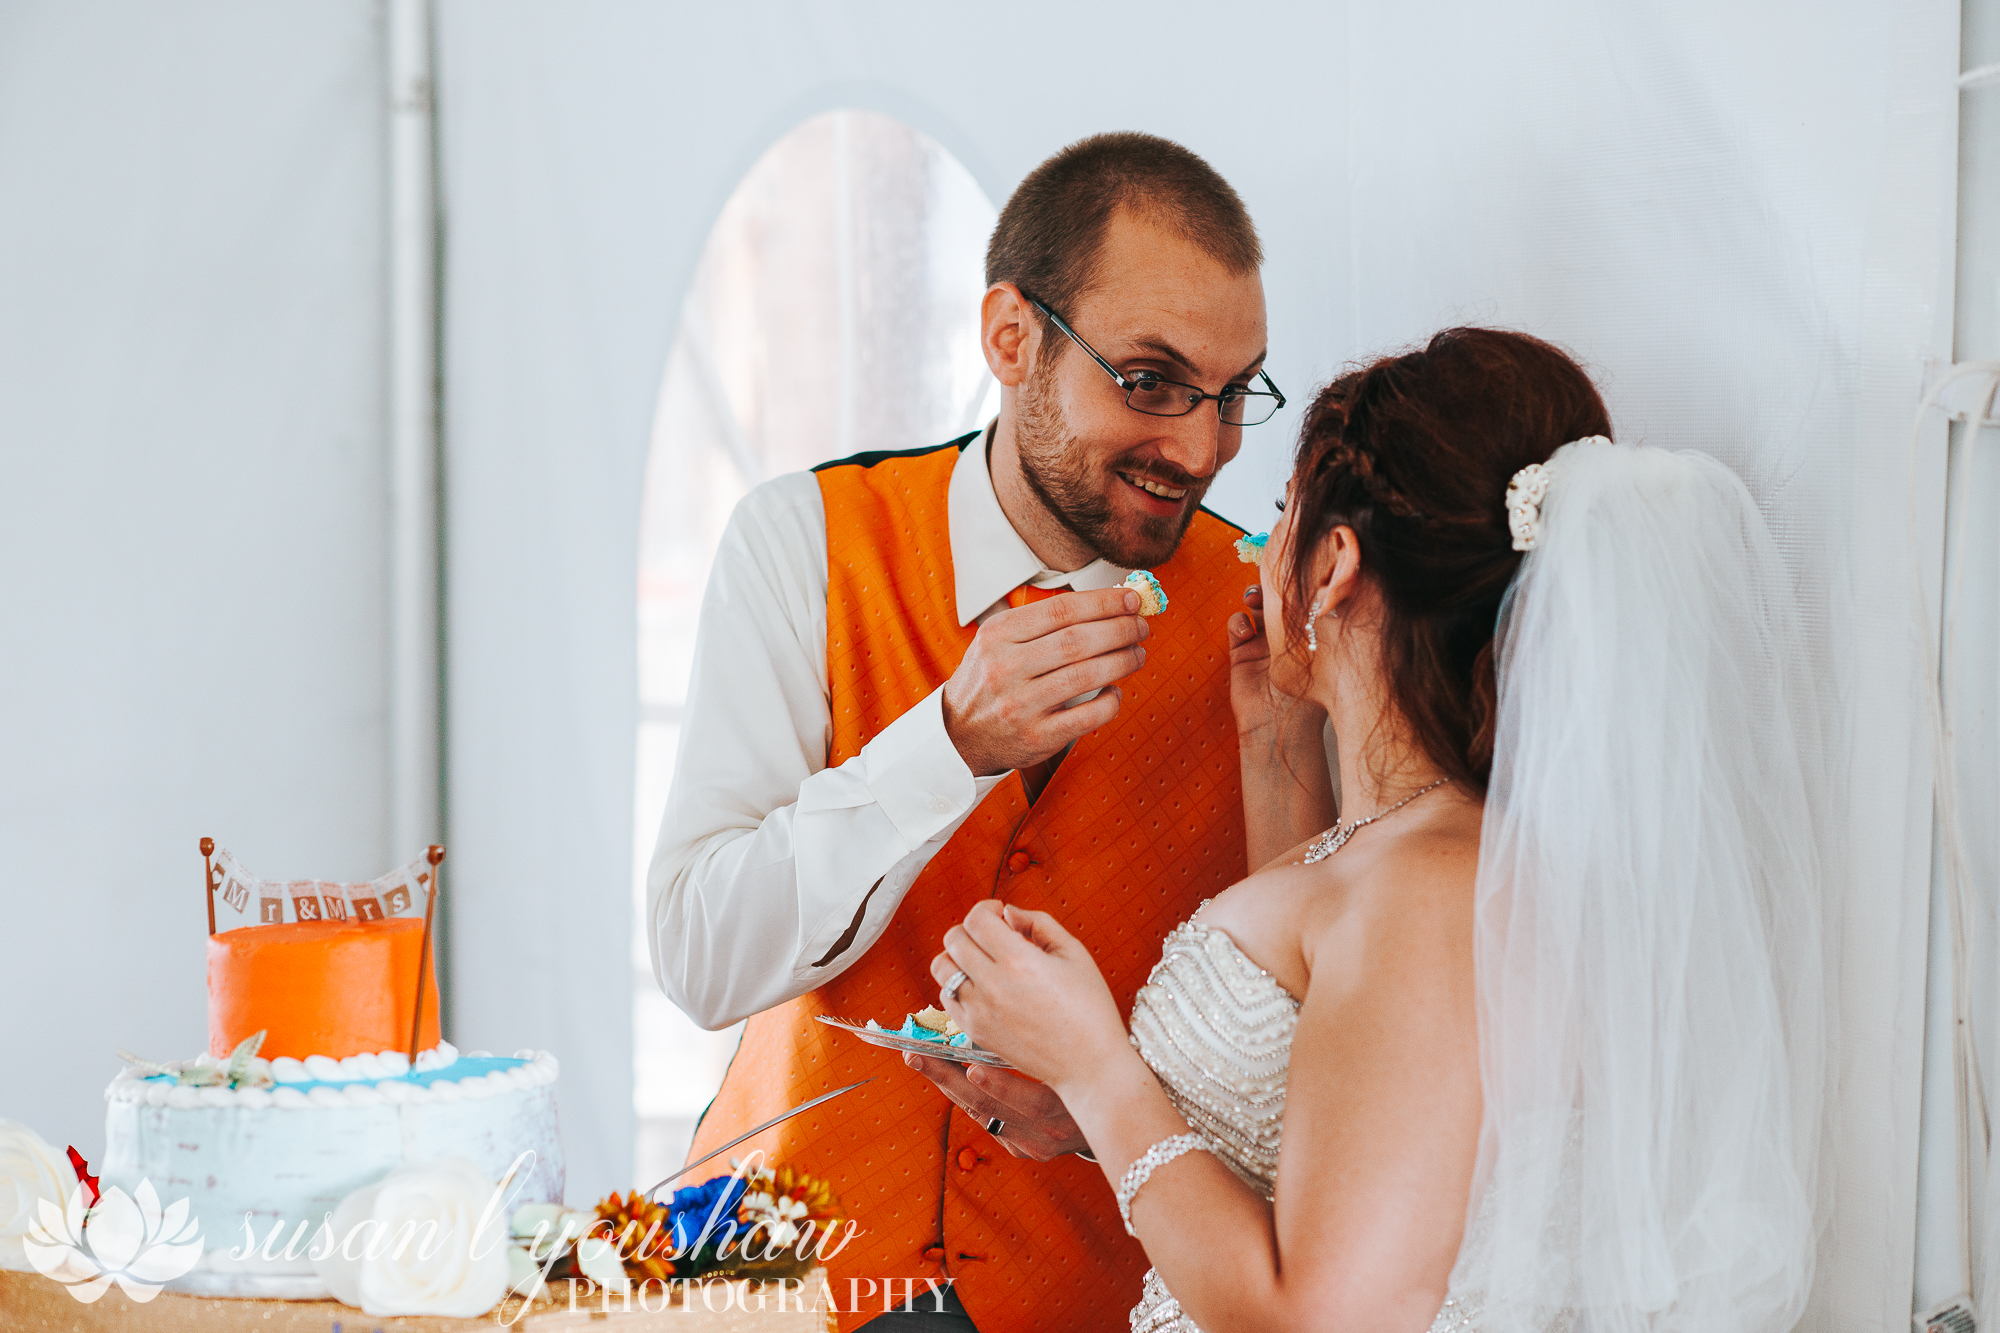 BLOG Kelly and DJ Roberts 08-25-2018 SLY Photography LLC-143.jpg